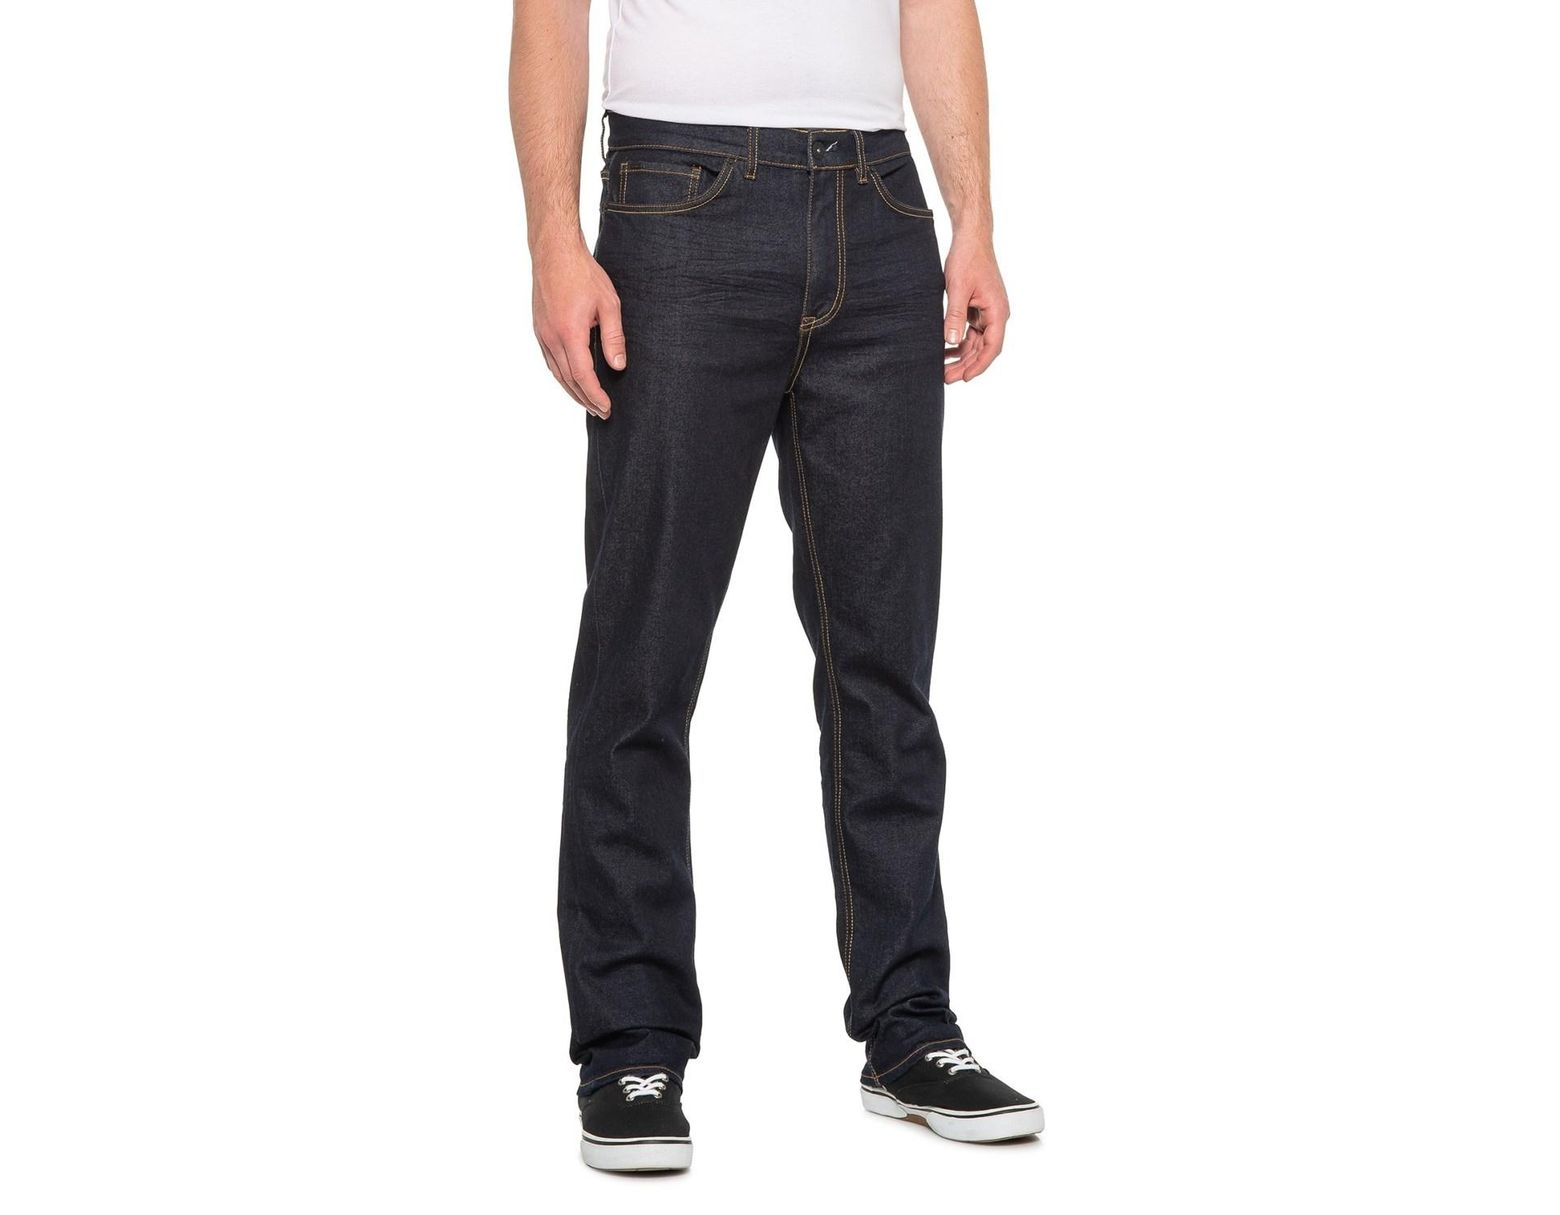 09bf65e5 Gramicci Rinse Wash Live Free Jeans in Blue for Men - Lyst